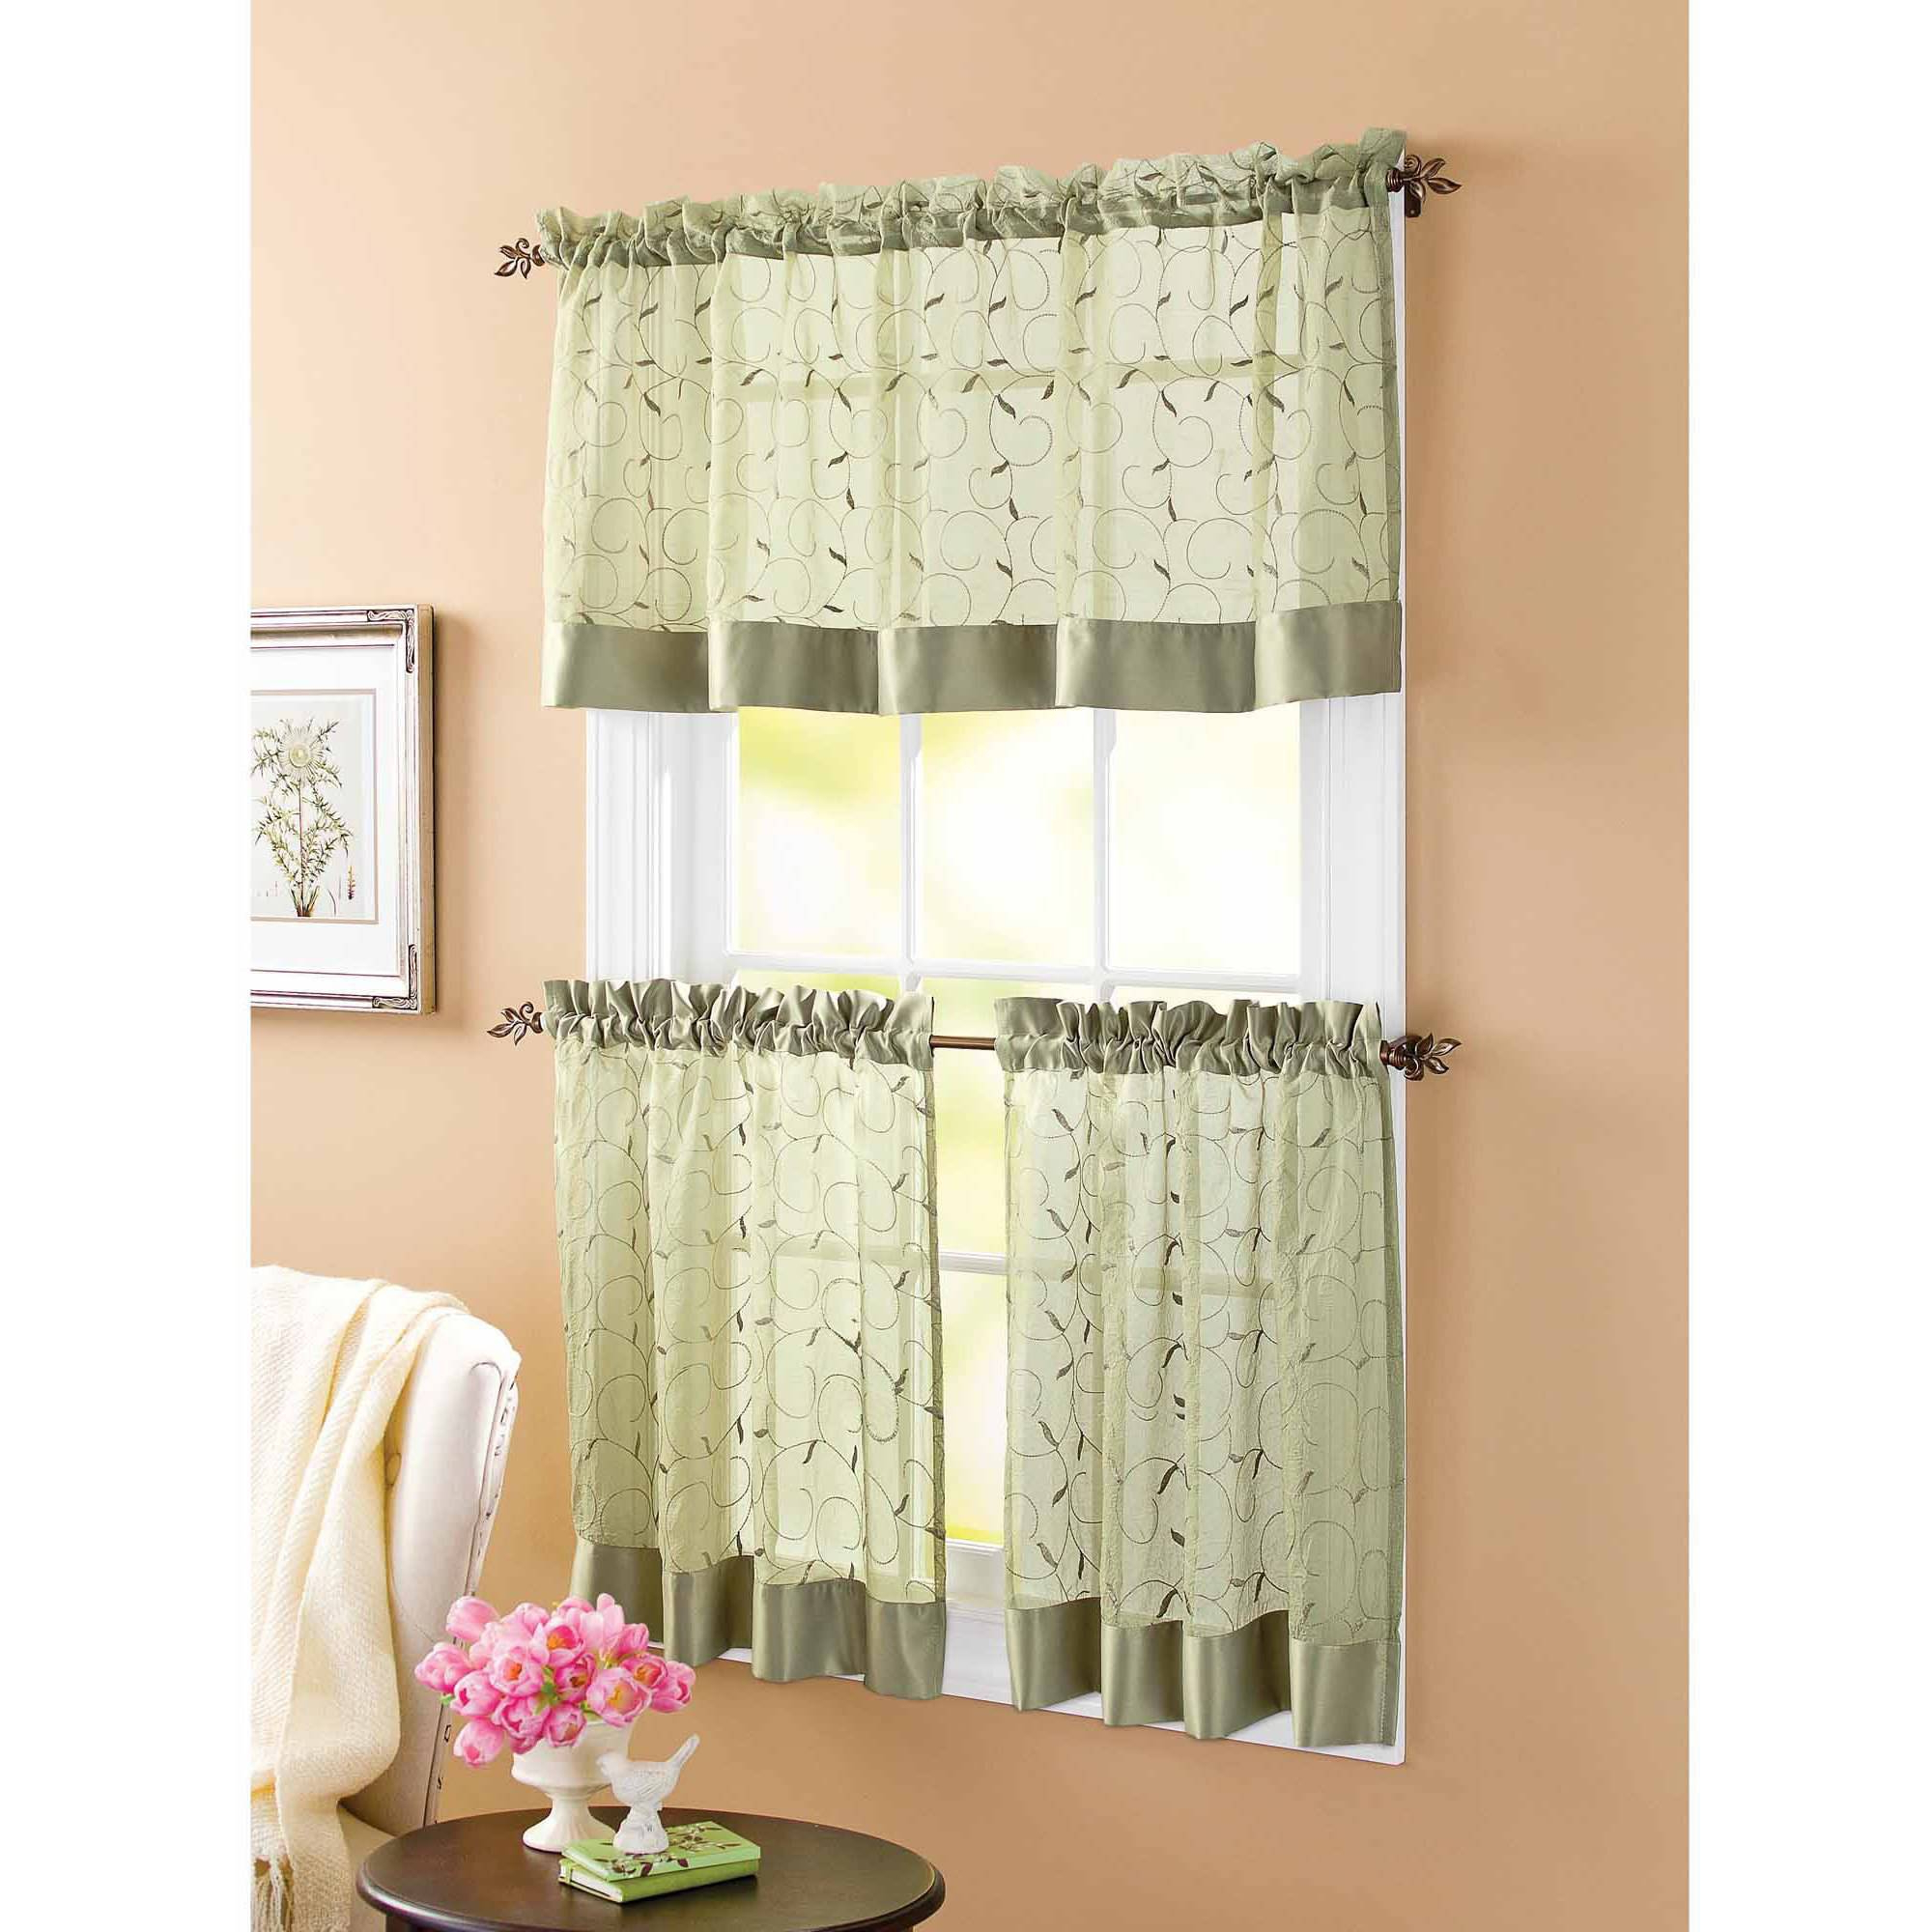 Best And Newest Hervorragend Red And White Swag Kitchen Curtains Window Intended For Delicious Apples Kitchen Curtain Tier And Valance Sets (View 2 of 20)